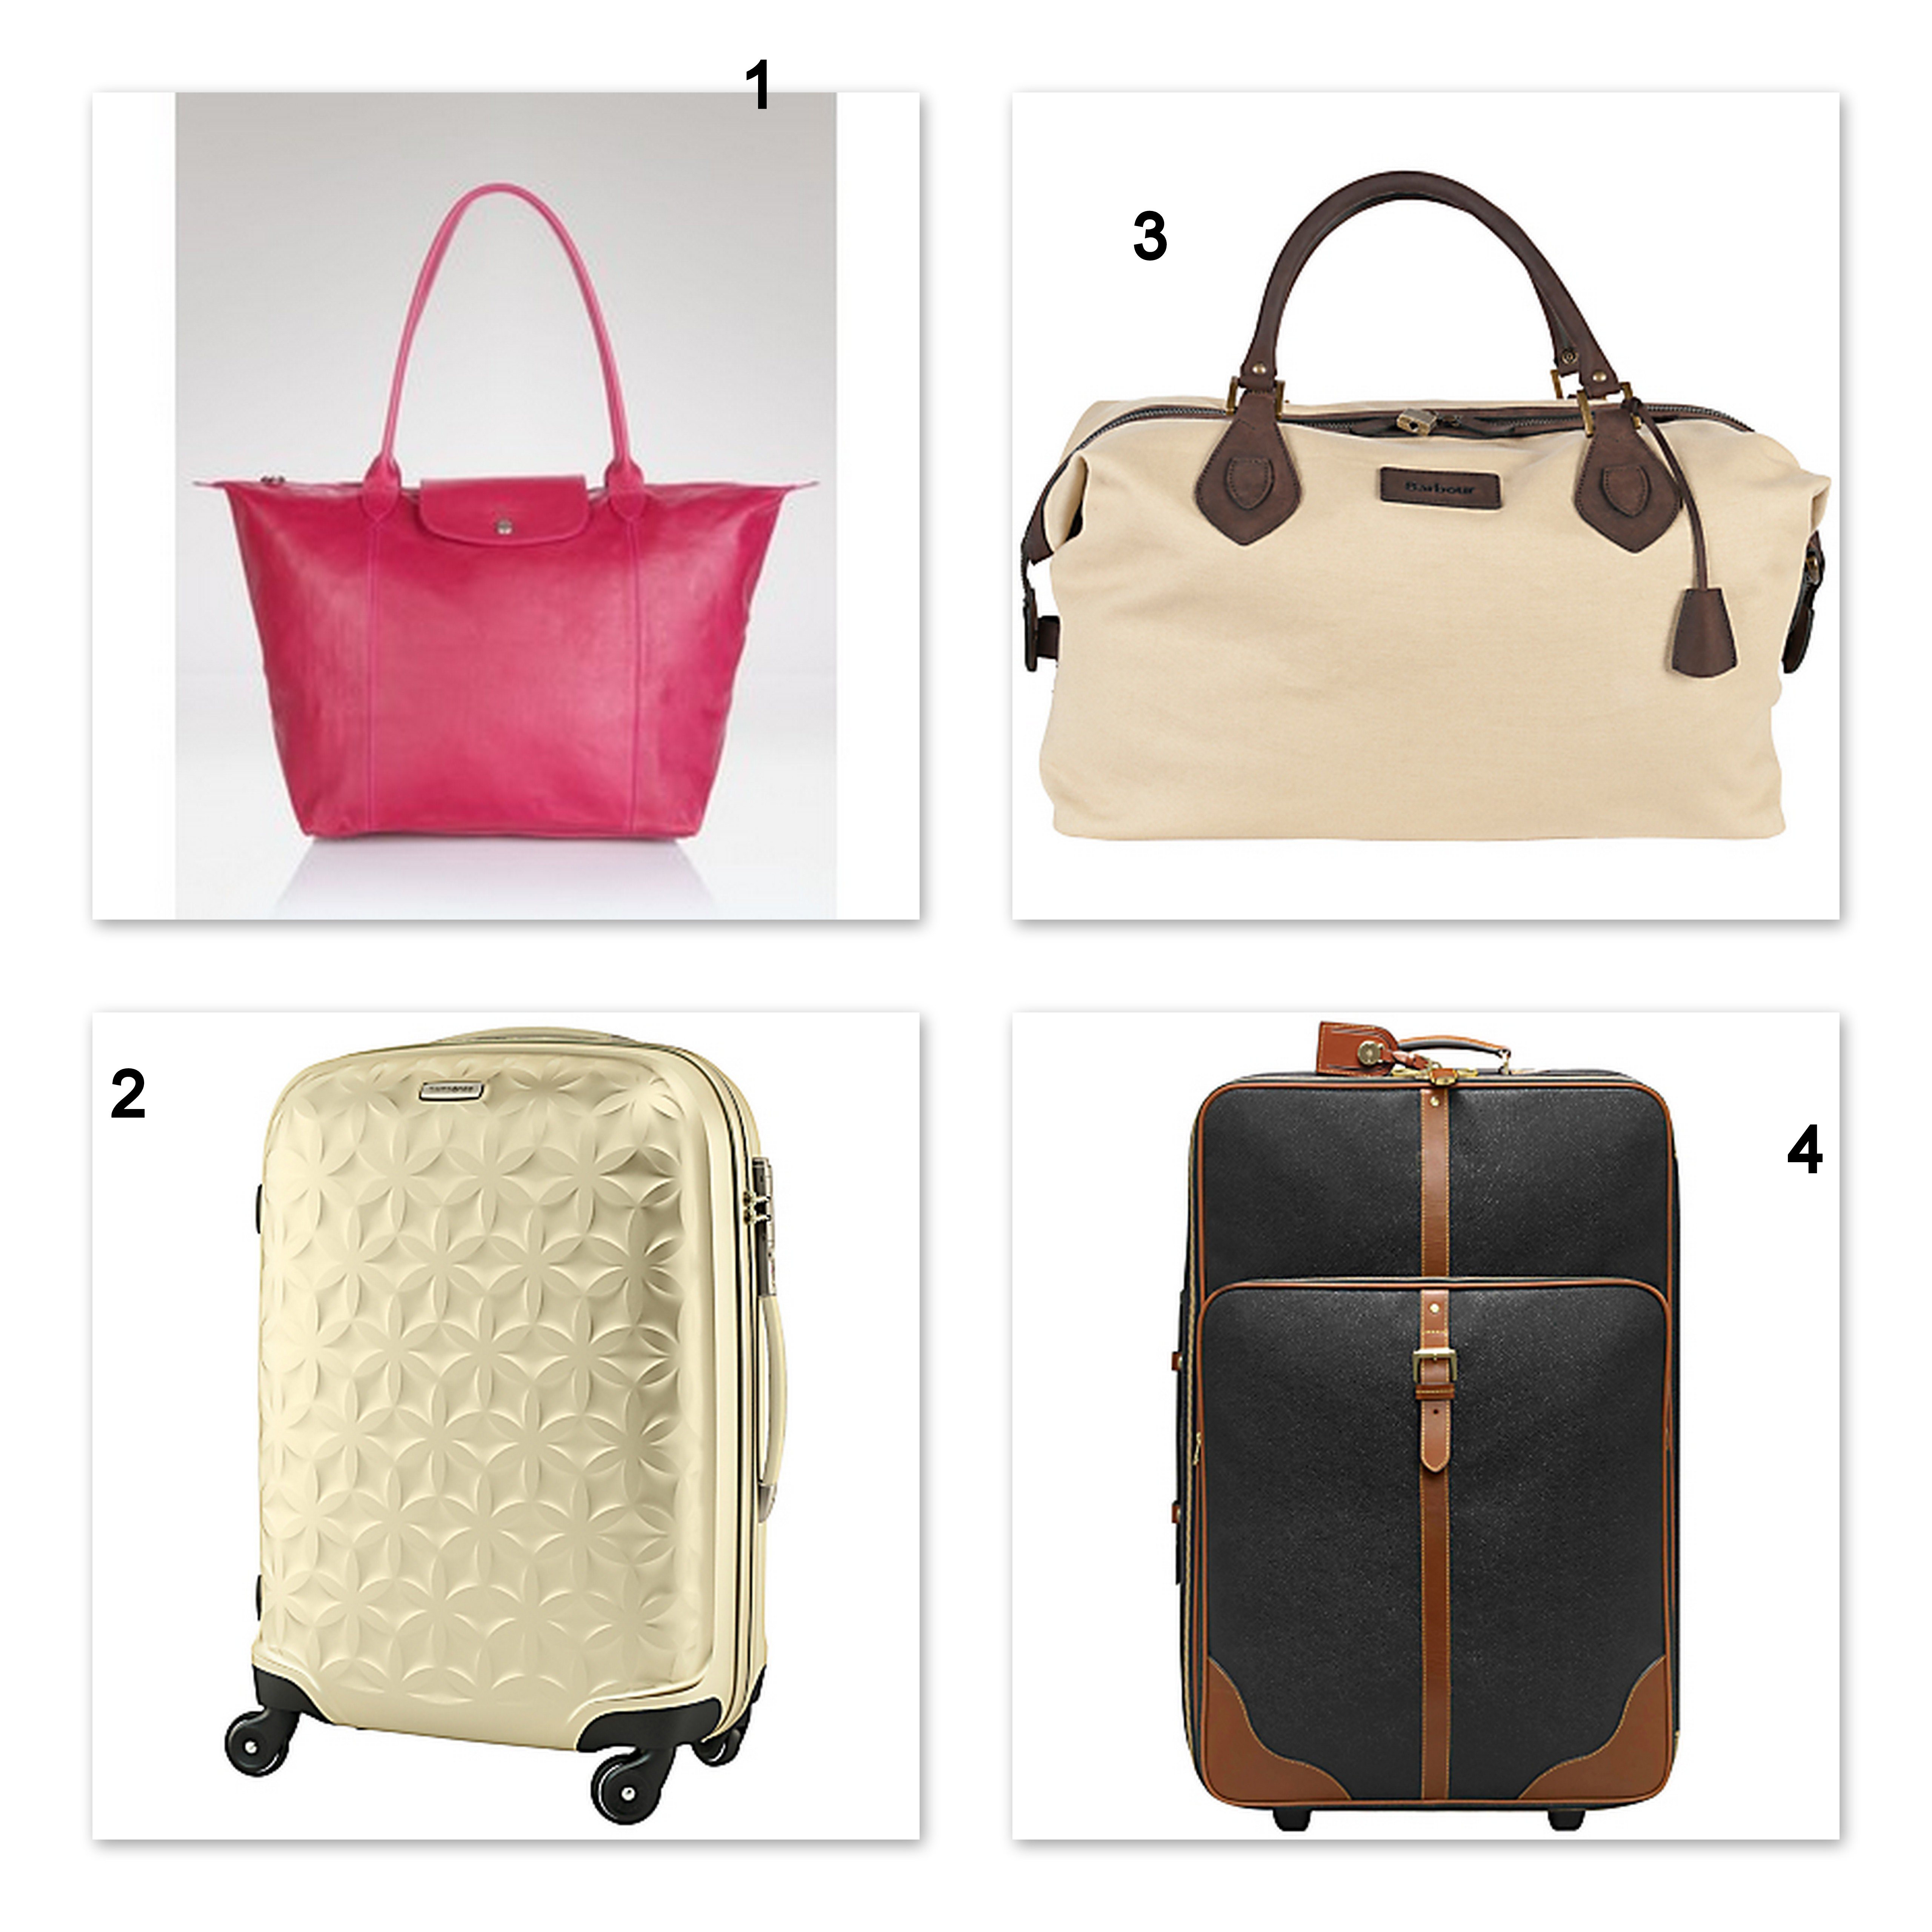 Fashionable luggage for 2012 - including Longchamp bags, Samsonite and Mulberry suitcases and Barbour Holdall